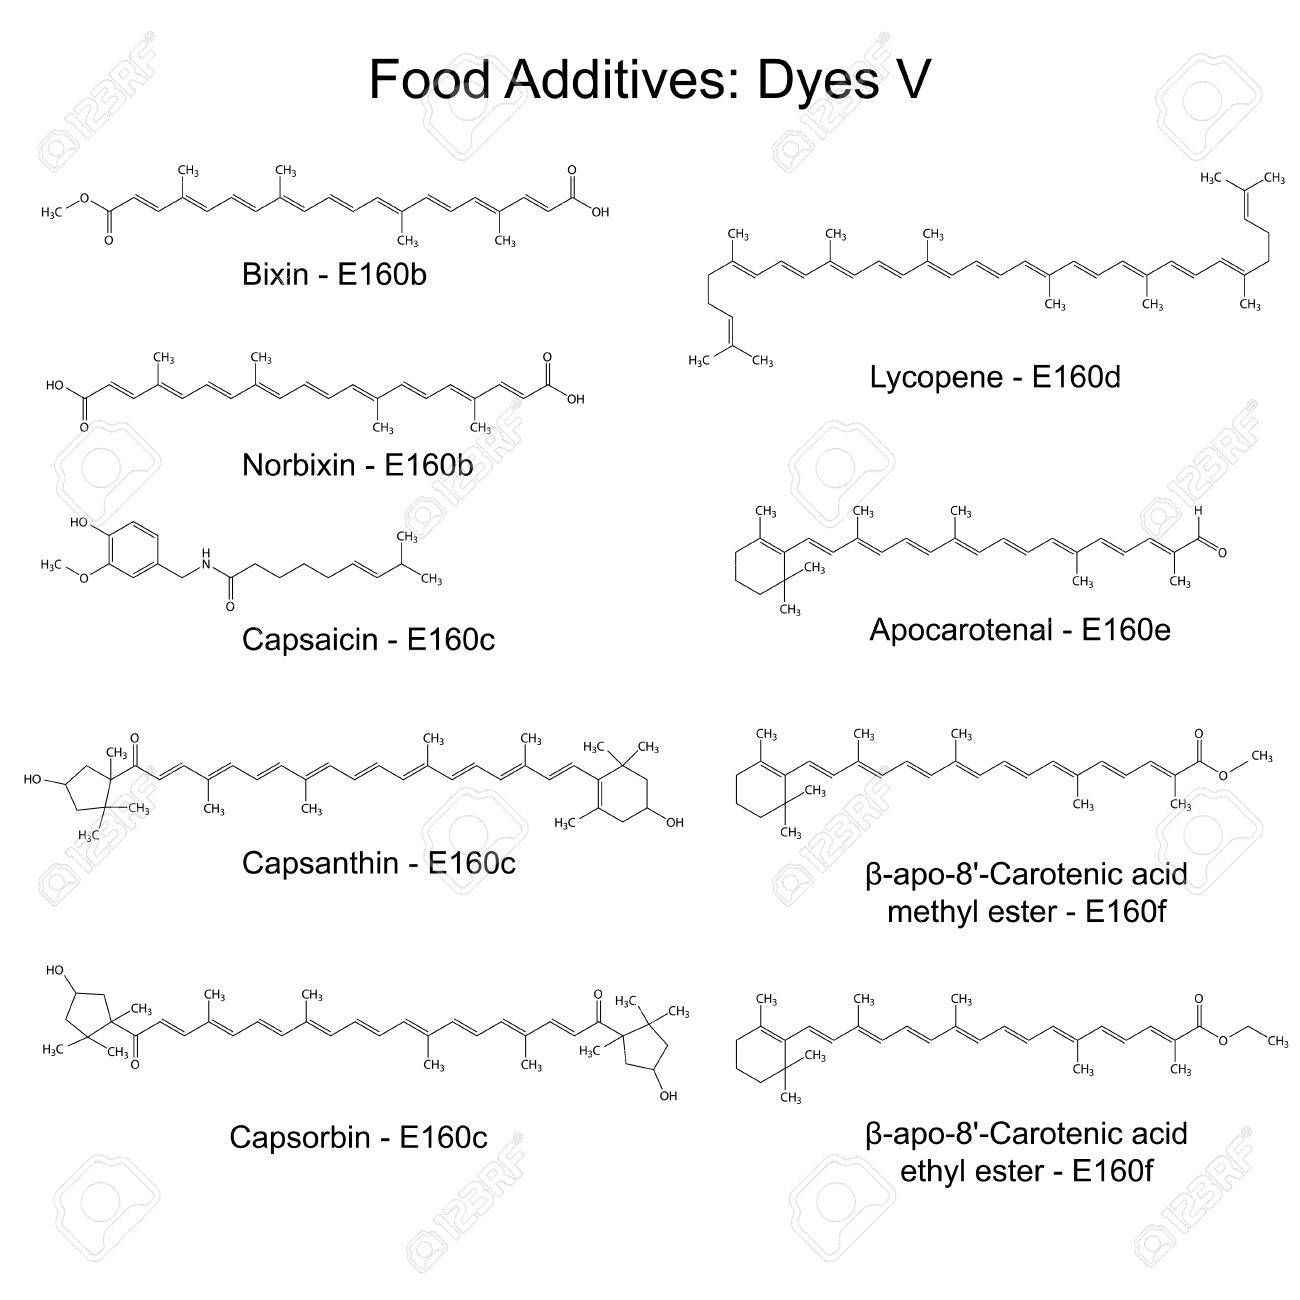 Food dyes - structural chemical formulas of food additives, fifth